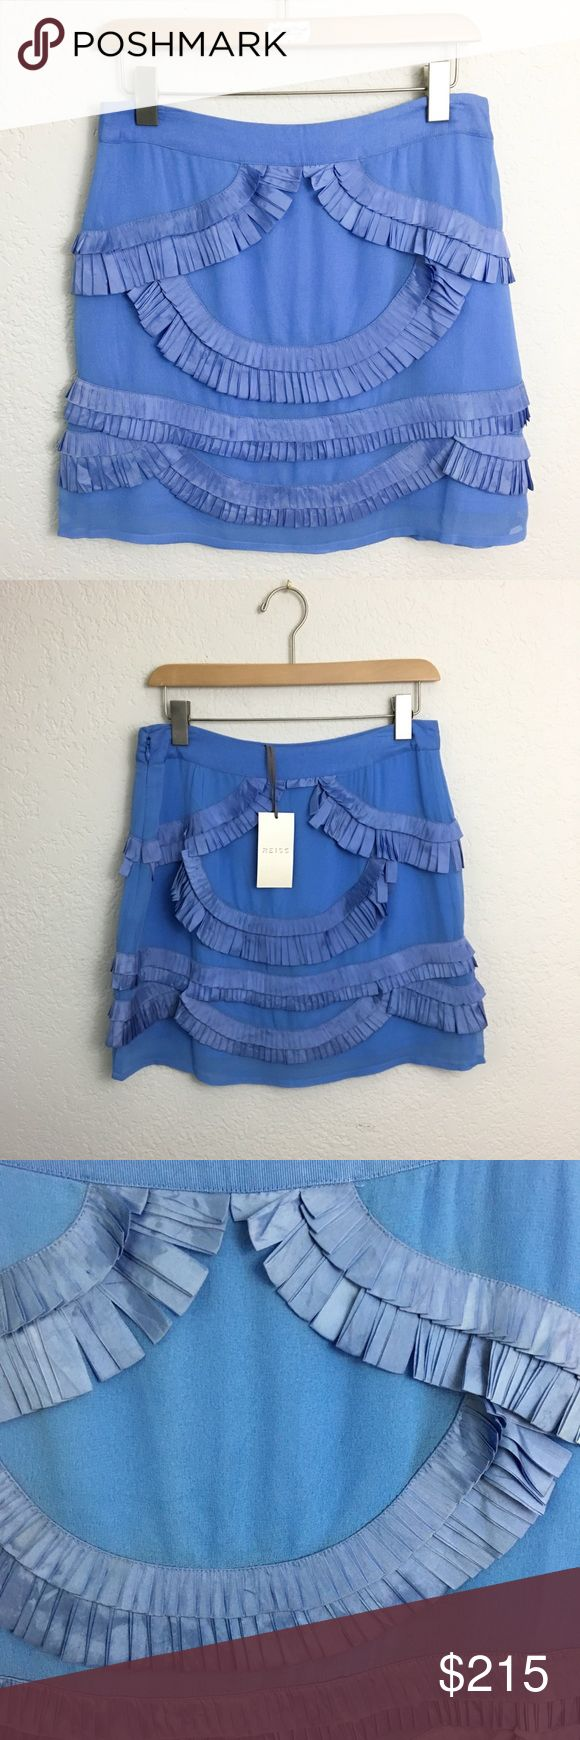 Reiss Silk Ribbon Fringe French Blue Skirt Adorable Ribbon design in French blue. Gorgeous detailing. Beautifully made. Silk. Side zip. Brand new with tags. ***Jewelry and Accessories by Stella & Dot- See Bio.*** 👗Fab Ab's Closet; Re-Styled Resale 👗 🎀15% OFF 3+ ITEM BUNDLES🎀 👉🏻PLEASE USE OFFER BUTTON👈🏻 ❌NO PP, TRADES, HOLDS❌  🛍ITEMS ALWAYS 100% AUTHENTIC🛍 👑POSH AMBASSADOR 👑 Reiss Skirts